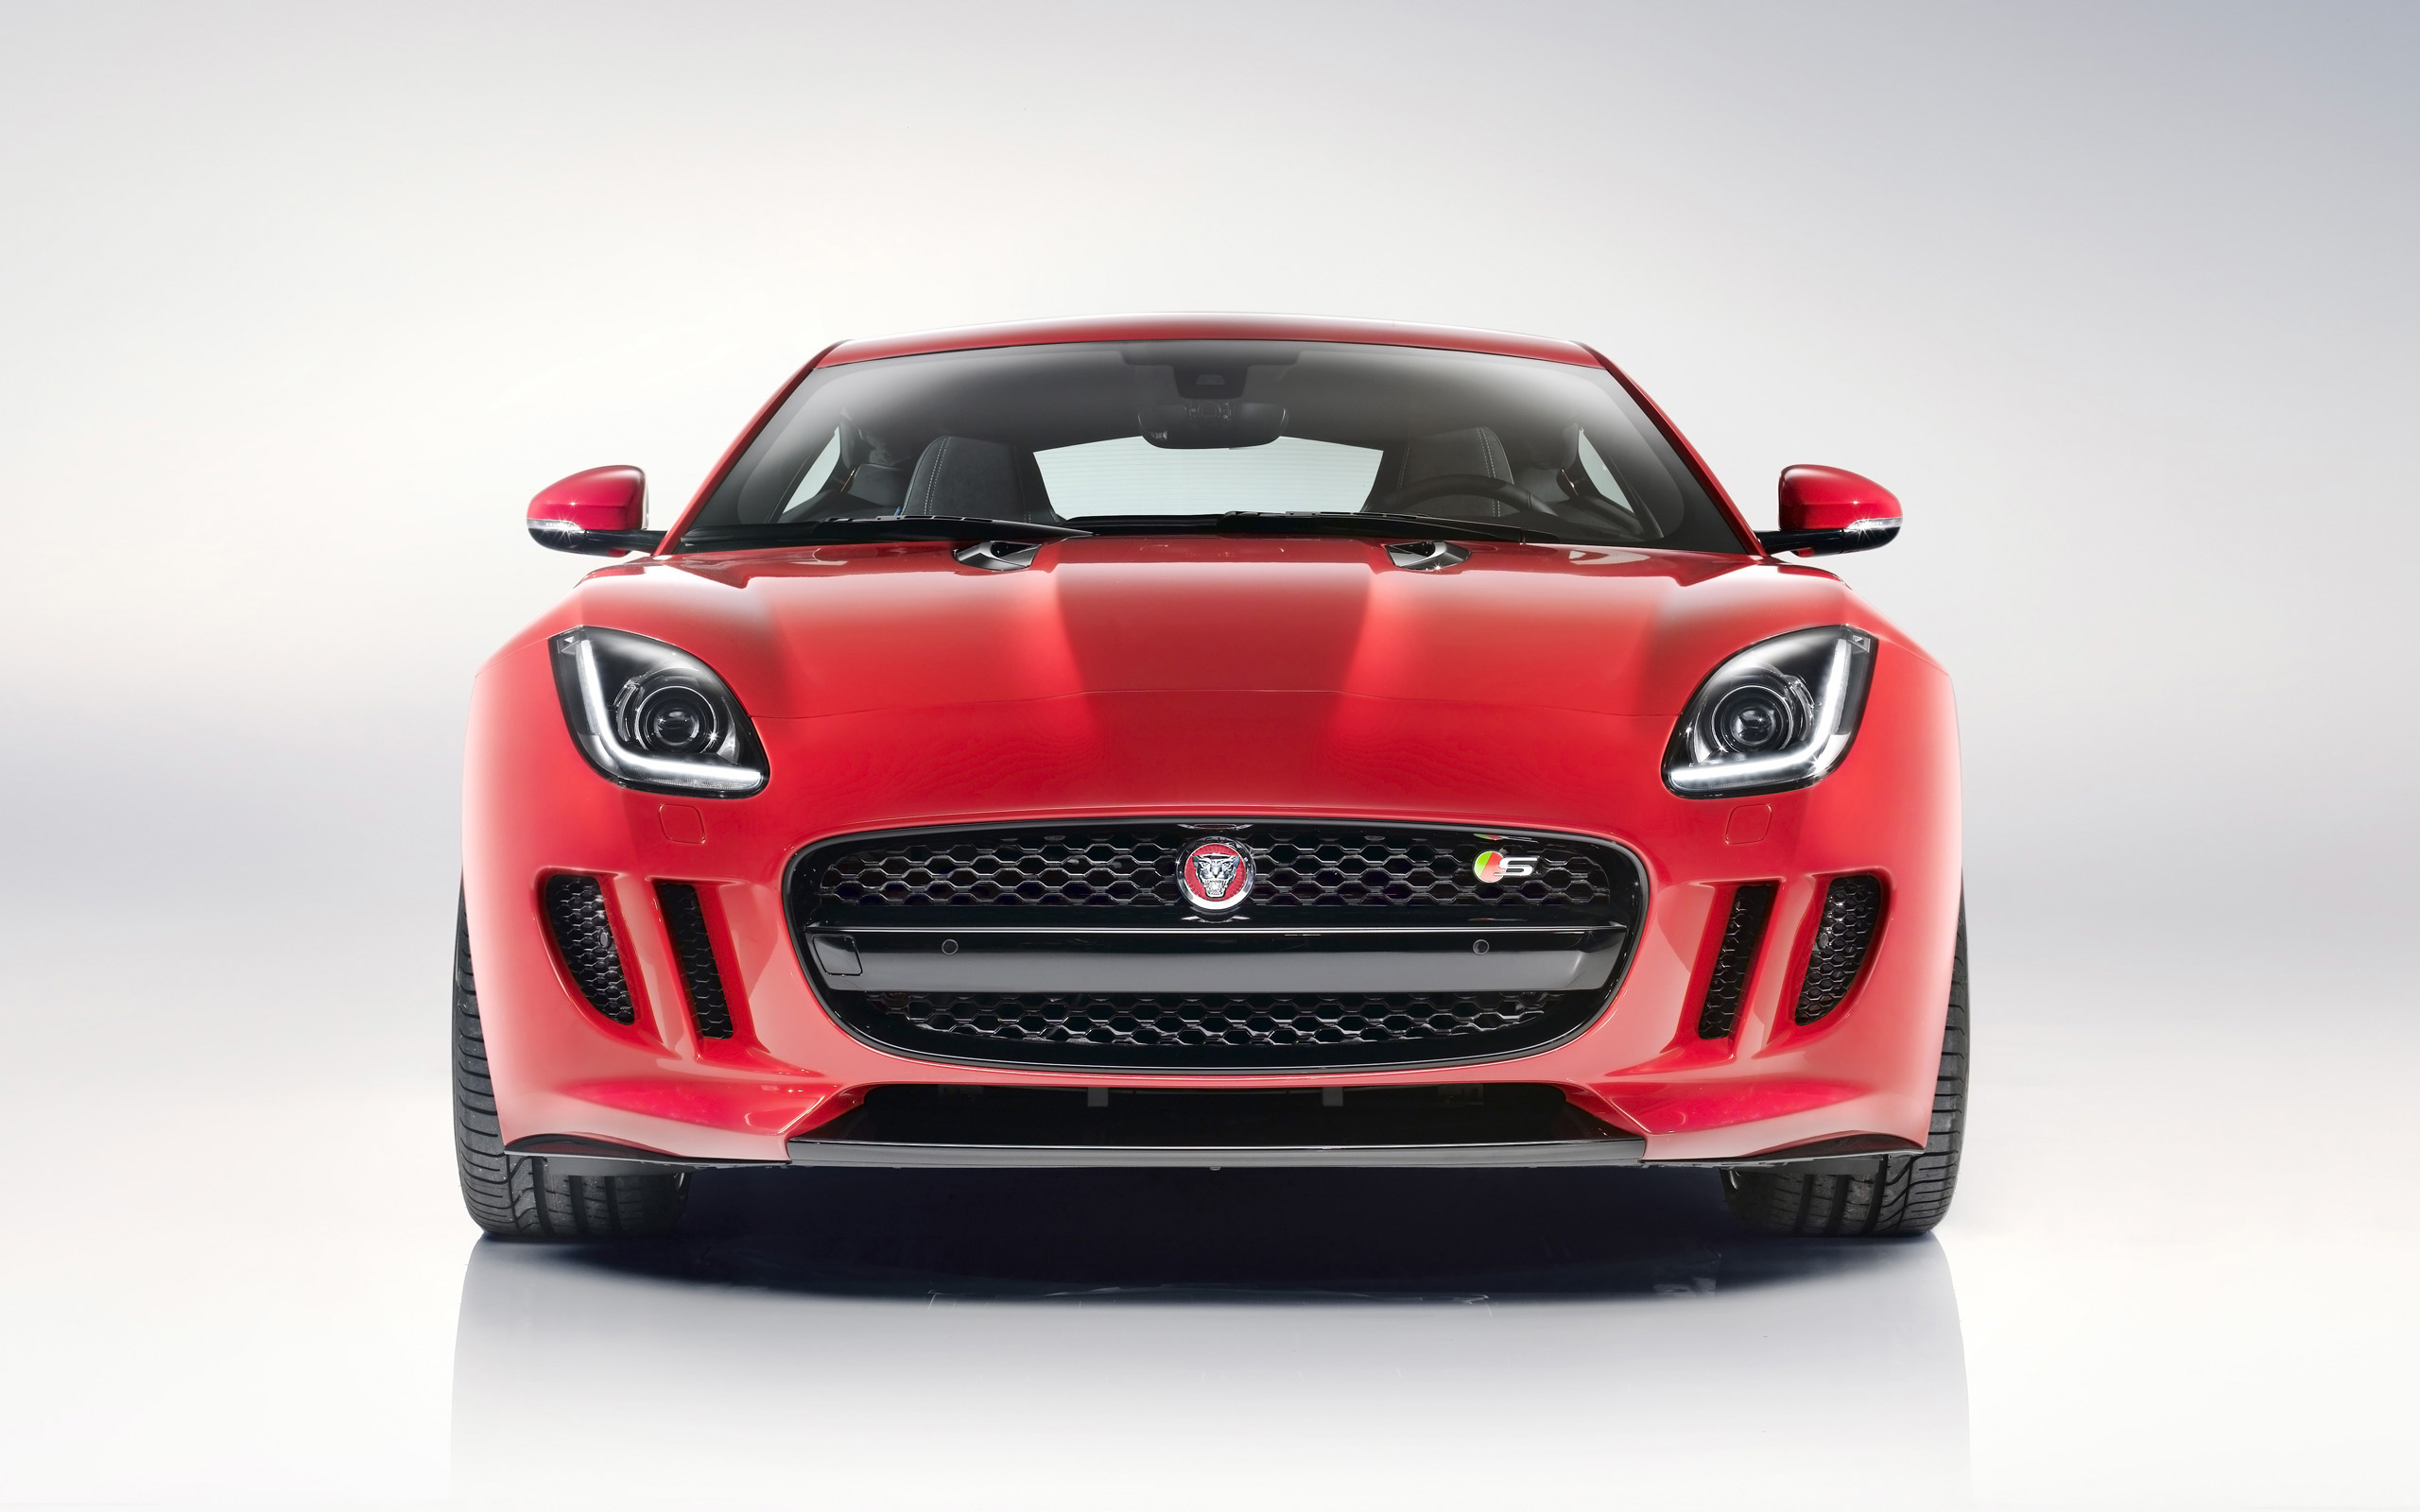 2014 jaguar f type r coupe 6 wallpaper hd car wallpapers. Cars Review. Best American Auto & Cars Review